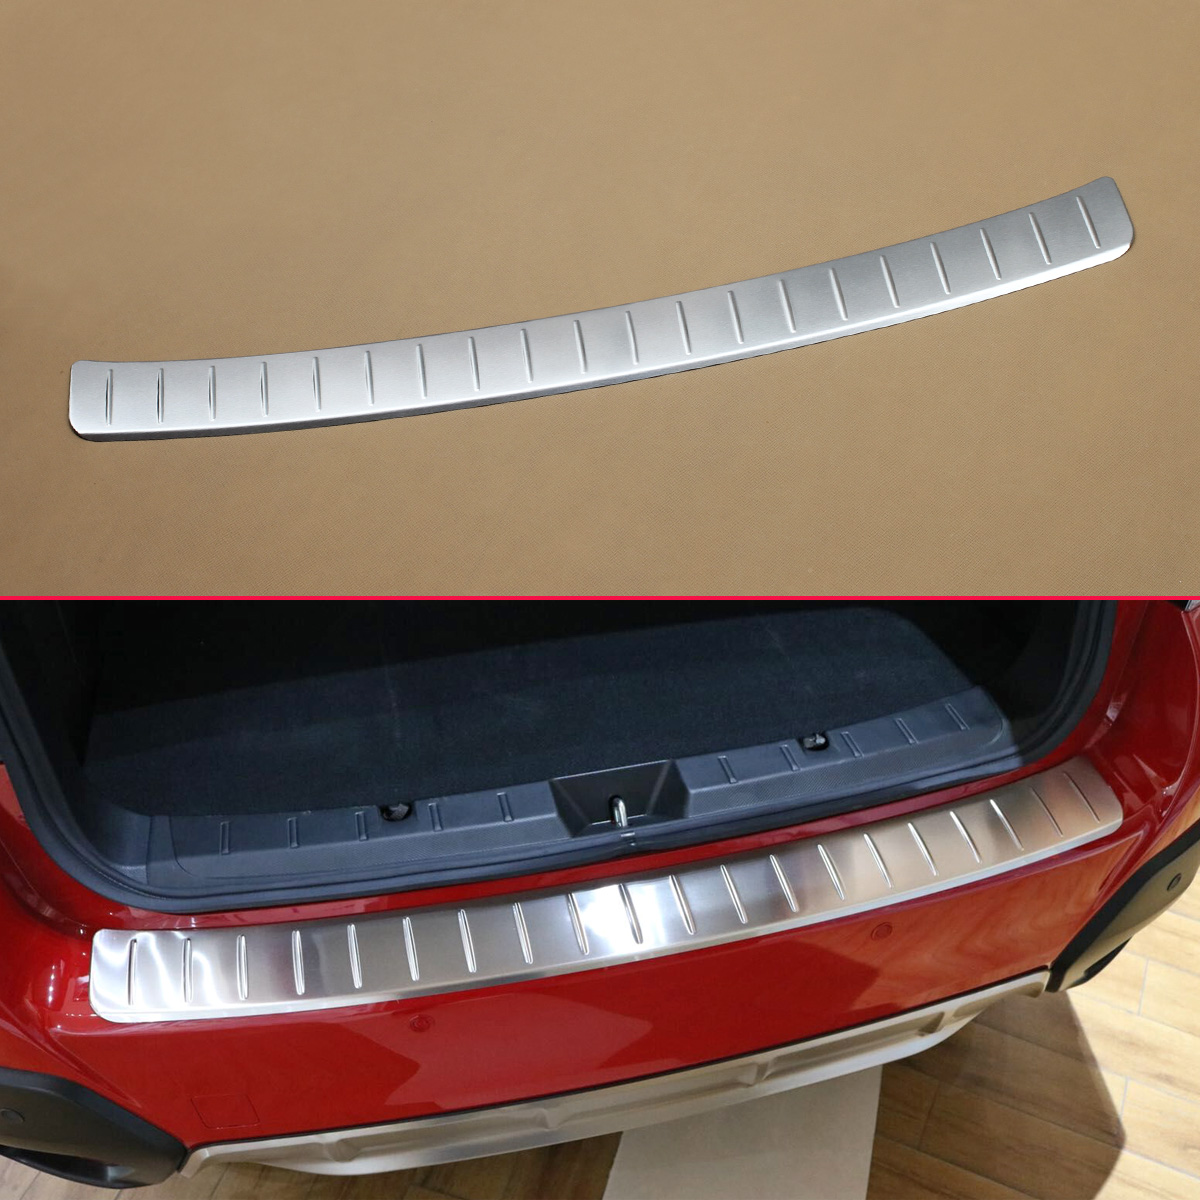 Stainless Steel Car Styling Rear Trunk Sill Cover For 2018 Subaru Crosstrek XV Bumper Protector Scuff Plate Overlay Accessories stainless steel interior rear bumper protector sill rear trunk scuff plate trim for peugeot 408 2014 2015 car styling accessory